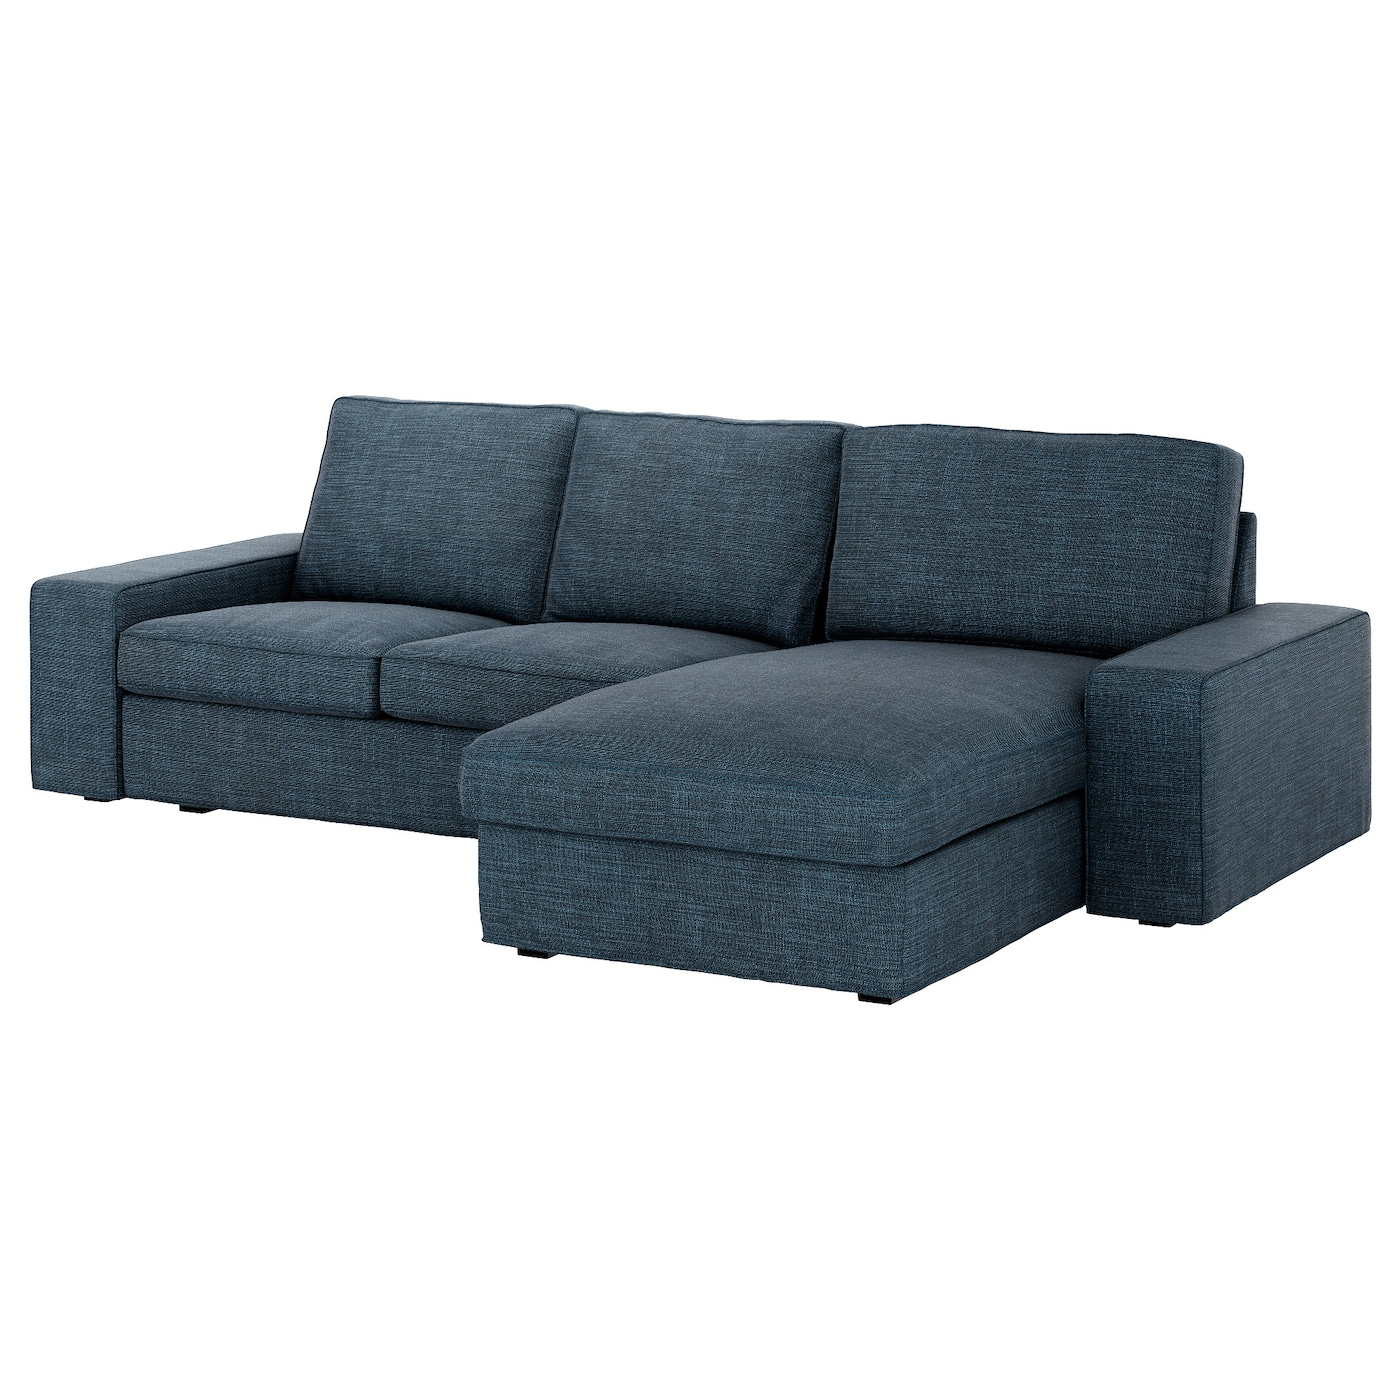 Kivik two seat sofa and chaise longue hillared dark blue for Chaise longue sofa